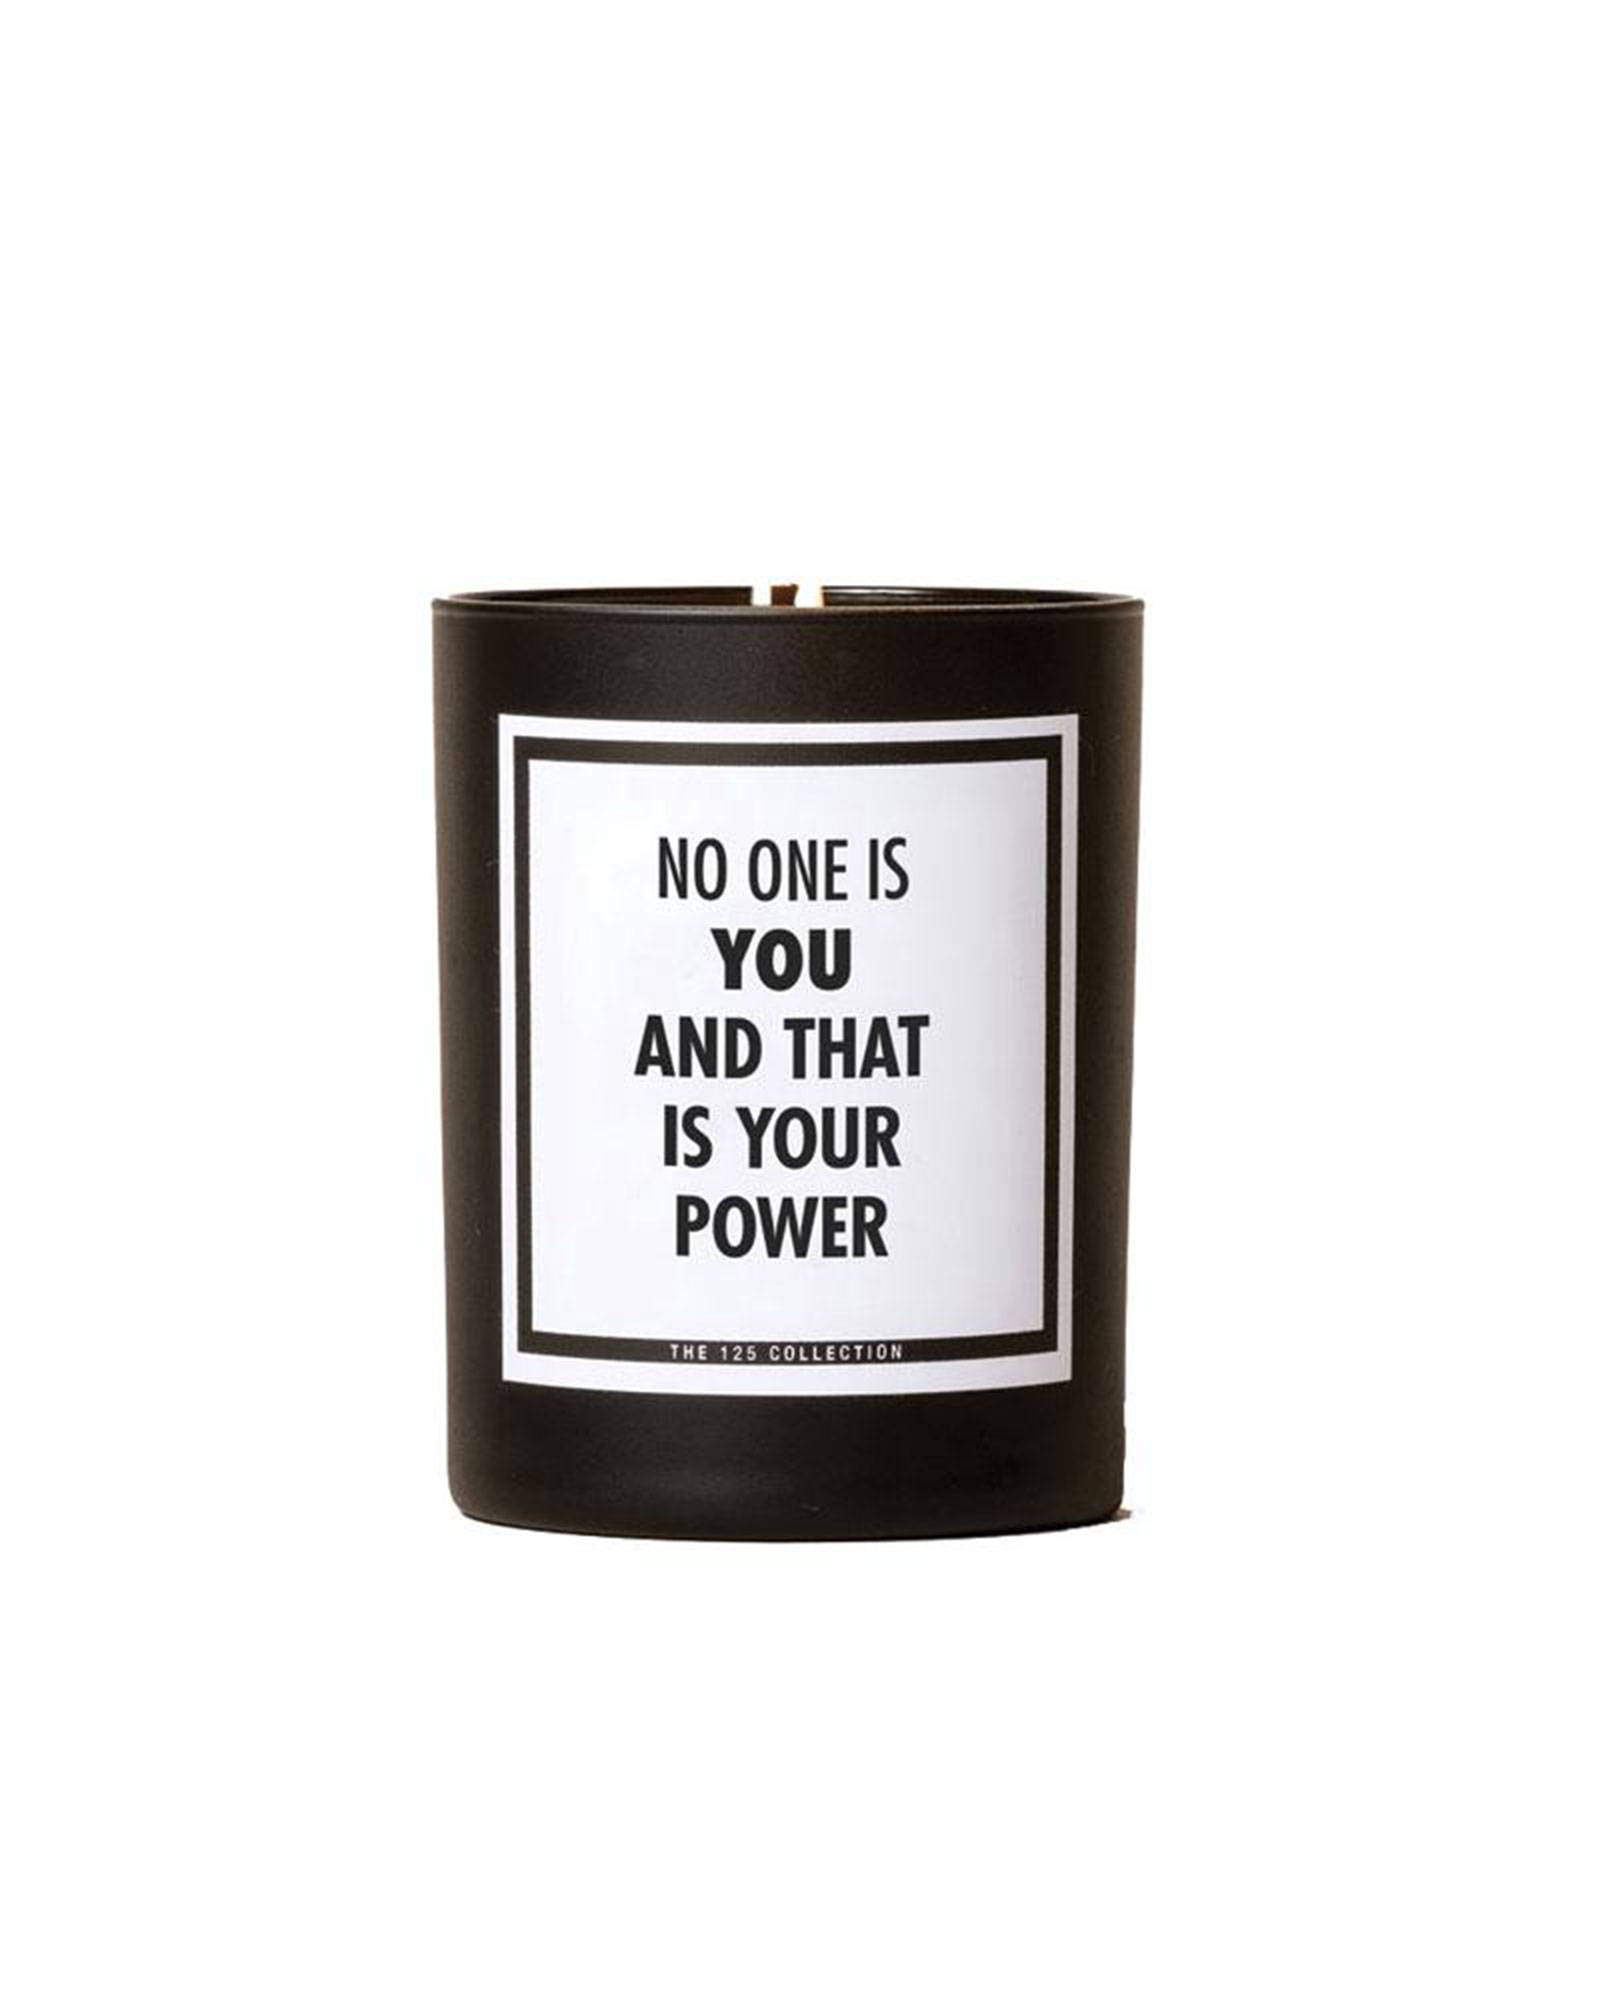 125 Collection No One Is You Candle - Perfect for hanging with you BFFs on Galentine's Day on February 13, this motivational quote-adorned soy candle comes in two scents (one birch, the other tobacco flower and vanilla and is individually poured in New York. $35, iobeautymarket.com